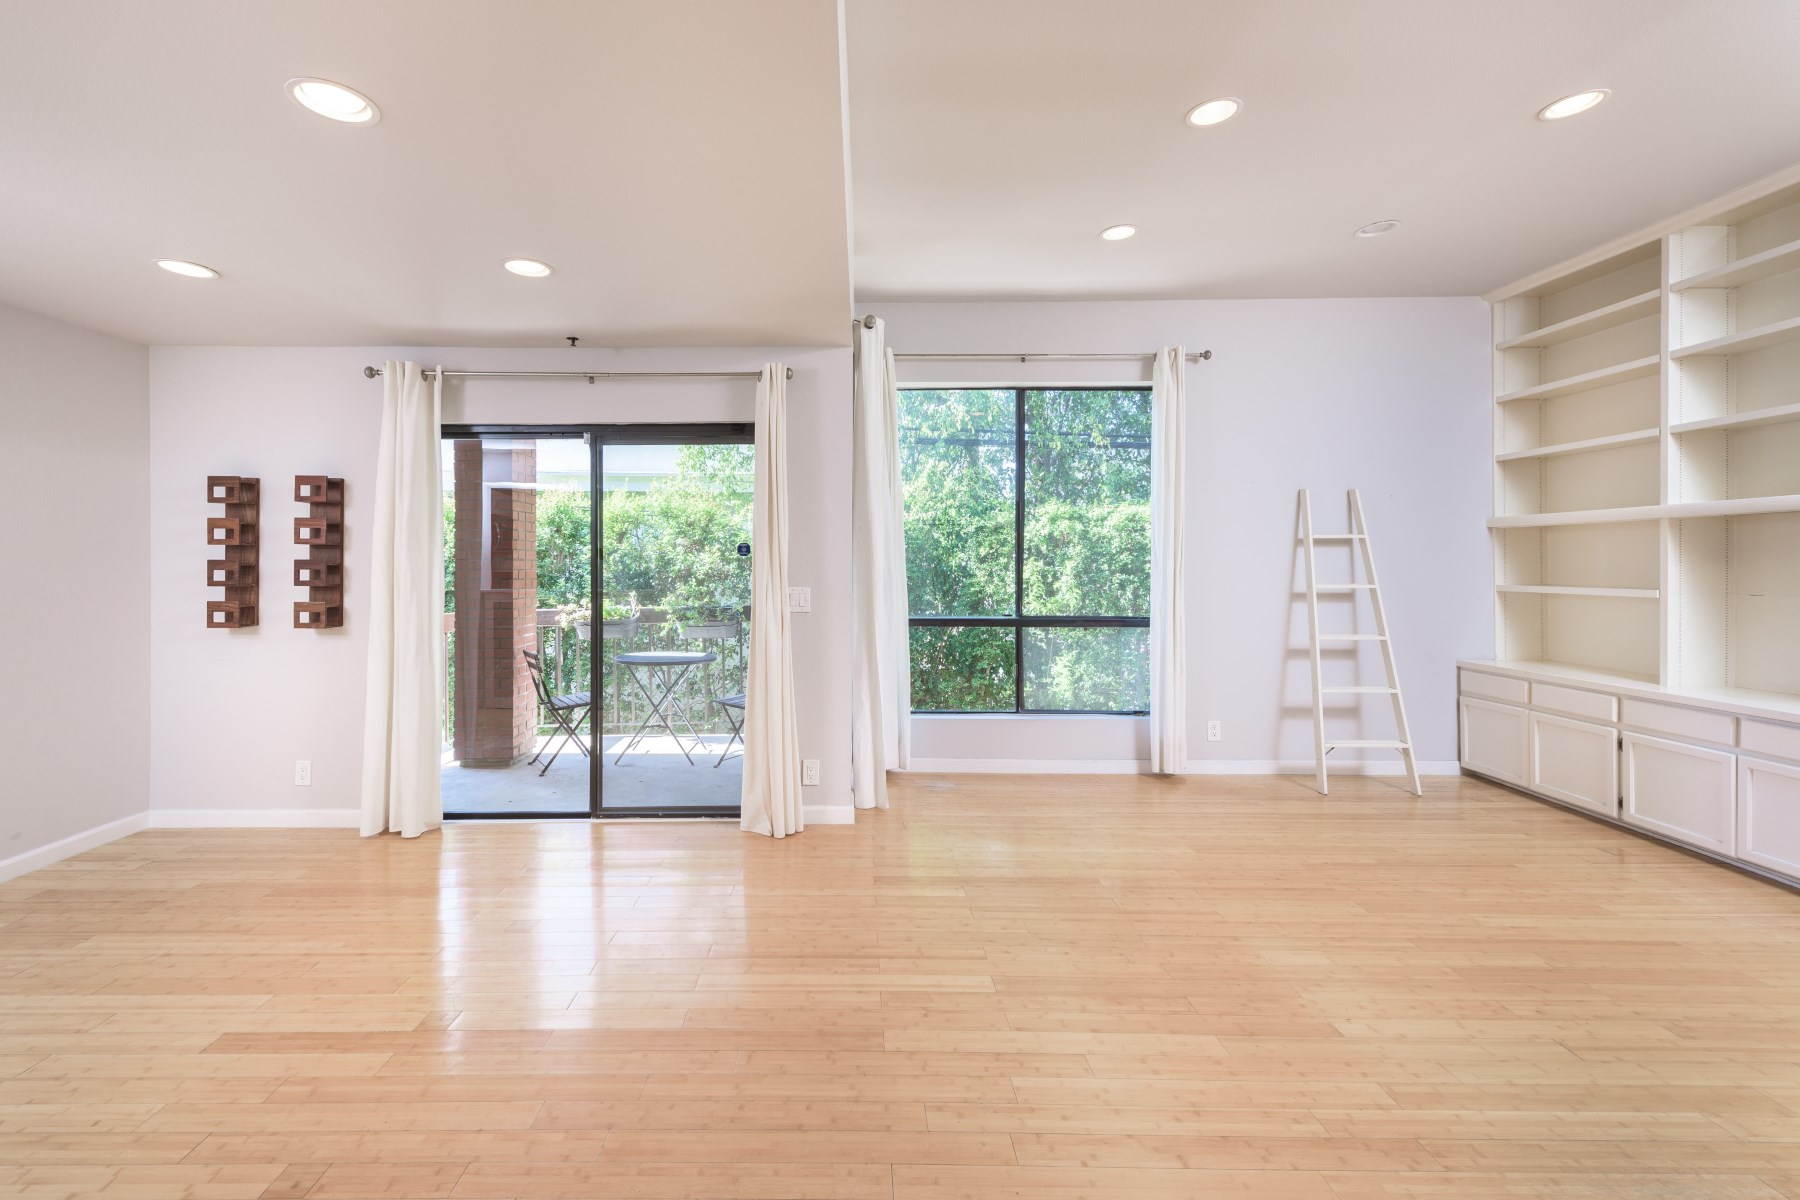 states los angeles gorgeous 2 bedroom condo for lease for rent